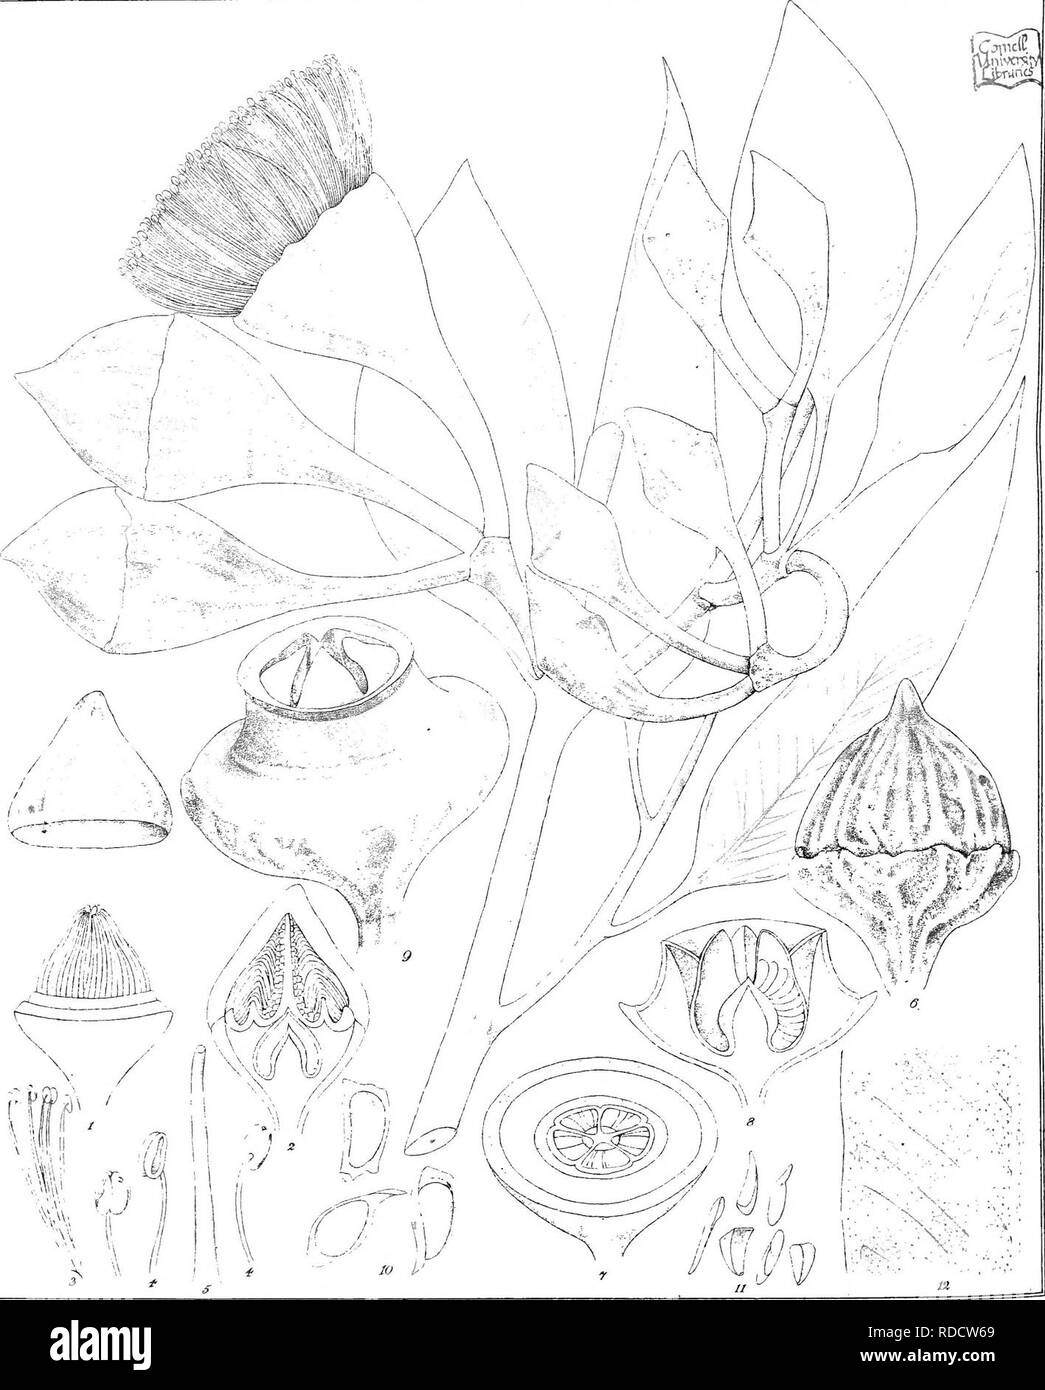 """. Eucalyptographia. A descriptive atlas of the eucalypts of Australia and the adjoining islands;. Eucalyptus; Botany. Un del C Trrede: ScC"""" LSi-. E.yMdJTexil STream Li^ho 5oy Prmliog Office Malb. 3i(giilf]!)te ]f^i?il)i?ak, Turczdnmow. Please note that these images are extracted from scanned page images that may have been digitally enhanced for readability - coloration and appearance of these illustrations may not perfectly resemble the original work.. Mueller, Ferdinand von, 1825-1896. Melbourne, J. Ferres, Govt. Print; [etc. ,etc. ] - Stock Image"""